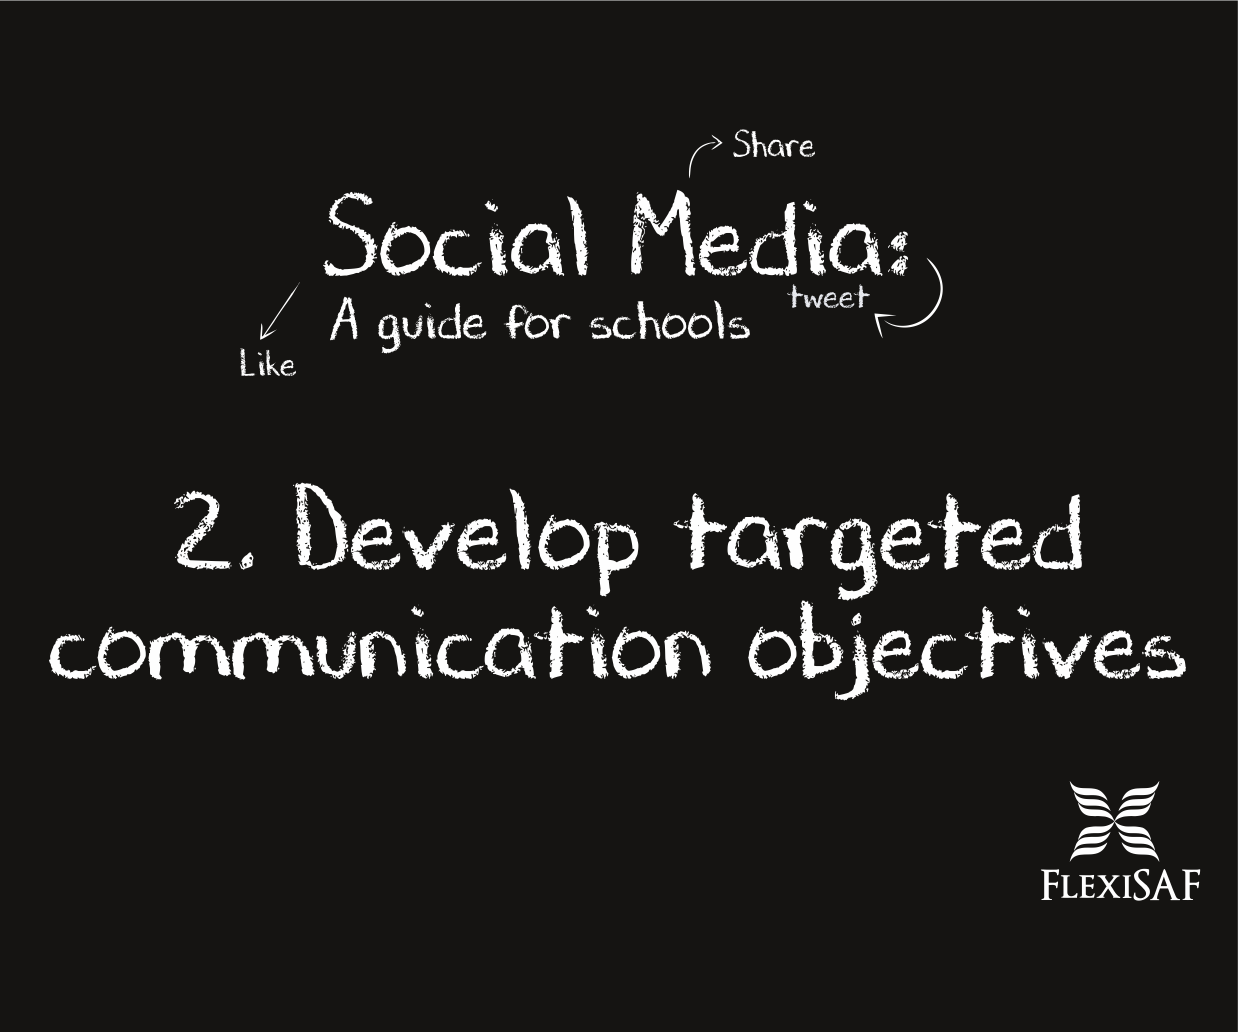 2. Develop targeted communications objectives